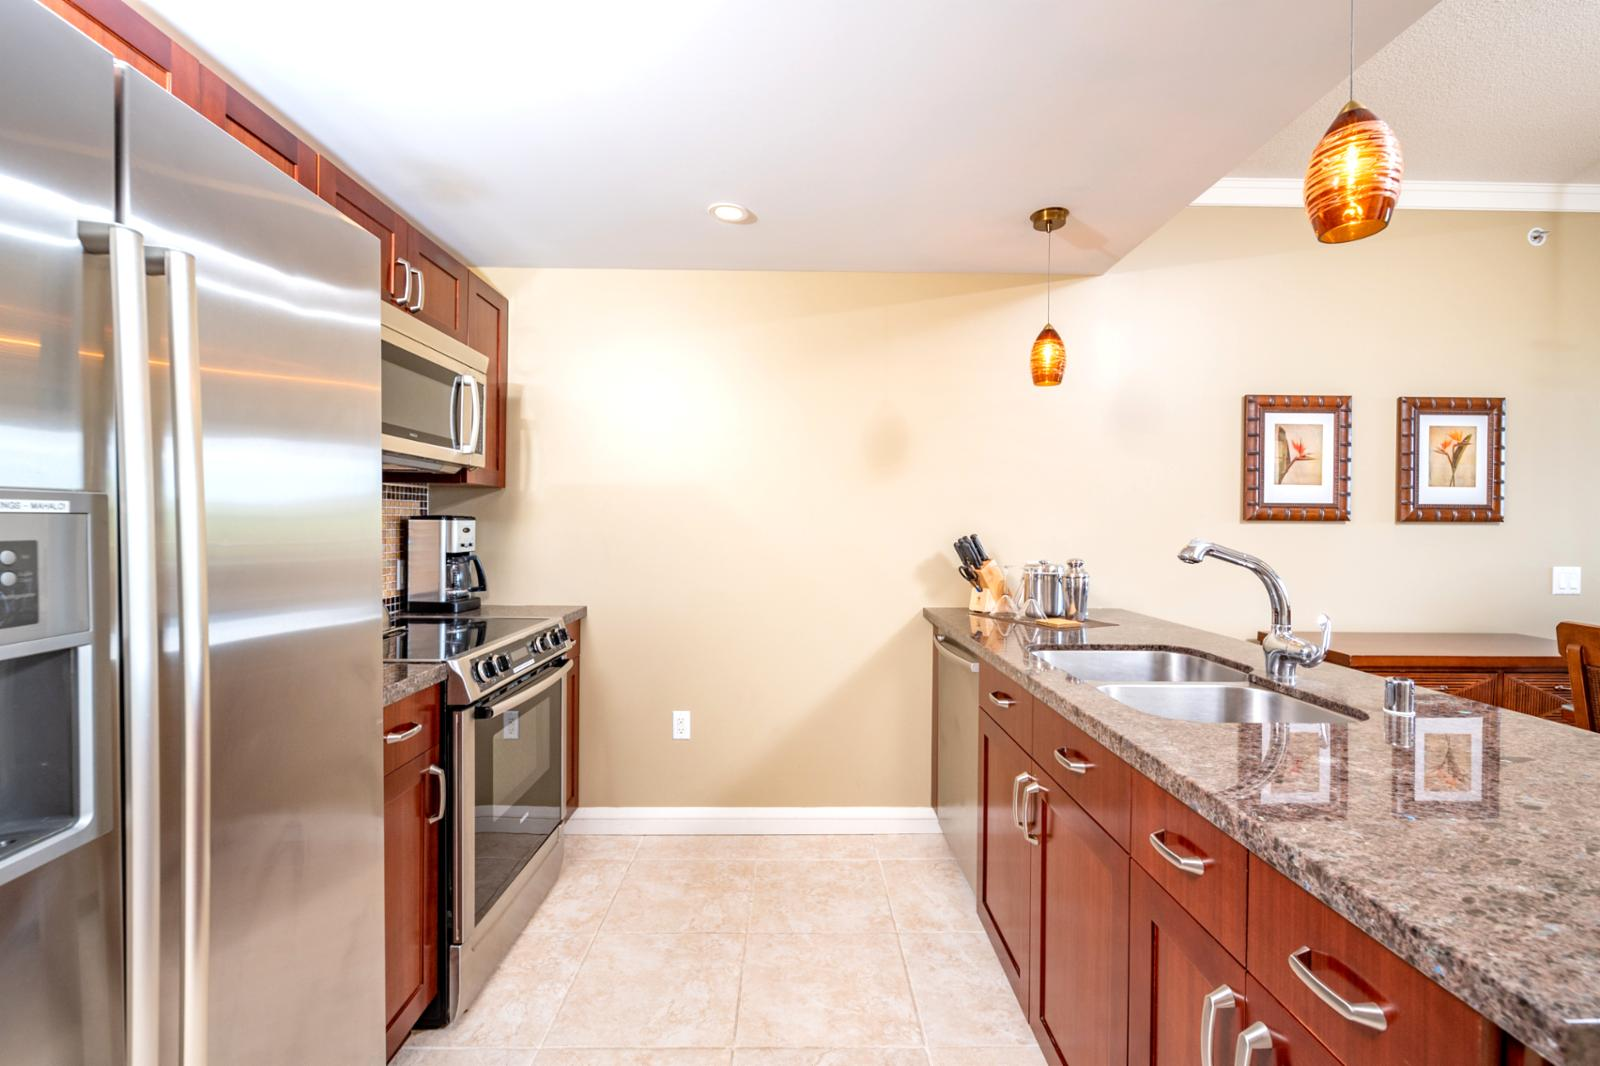 Large layout and ample counter space for meal prep